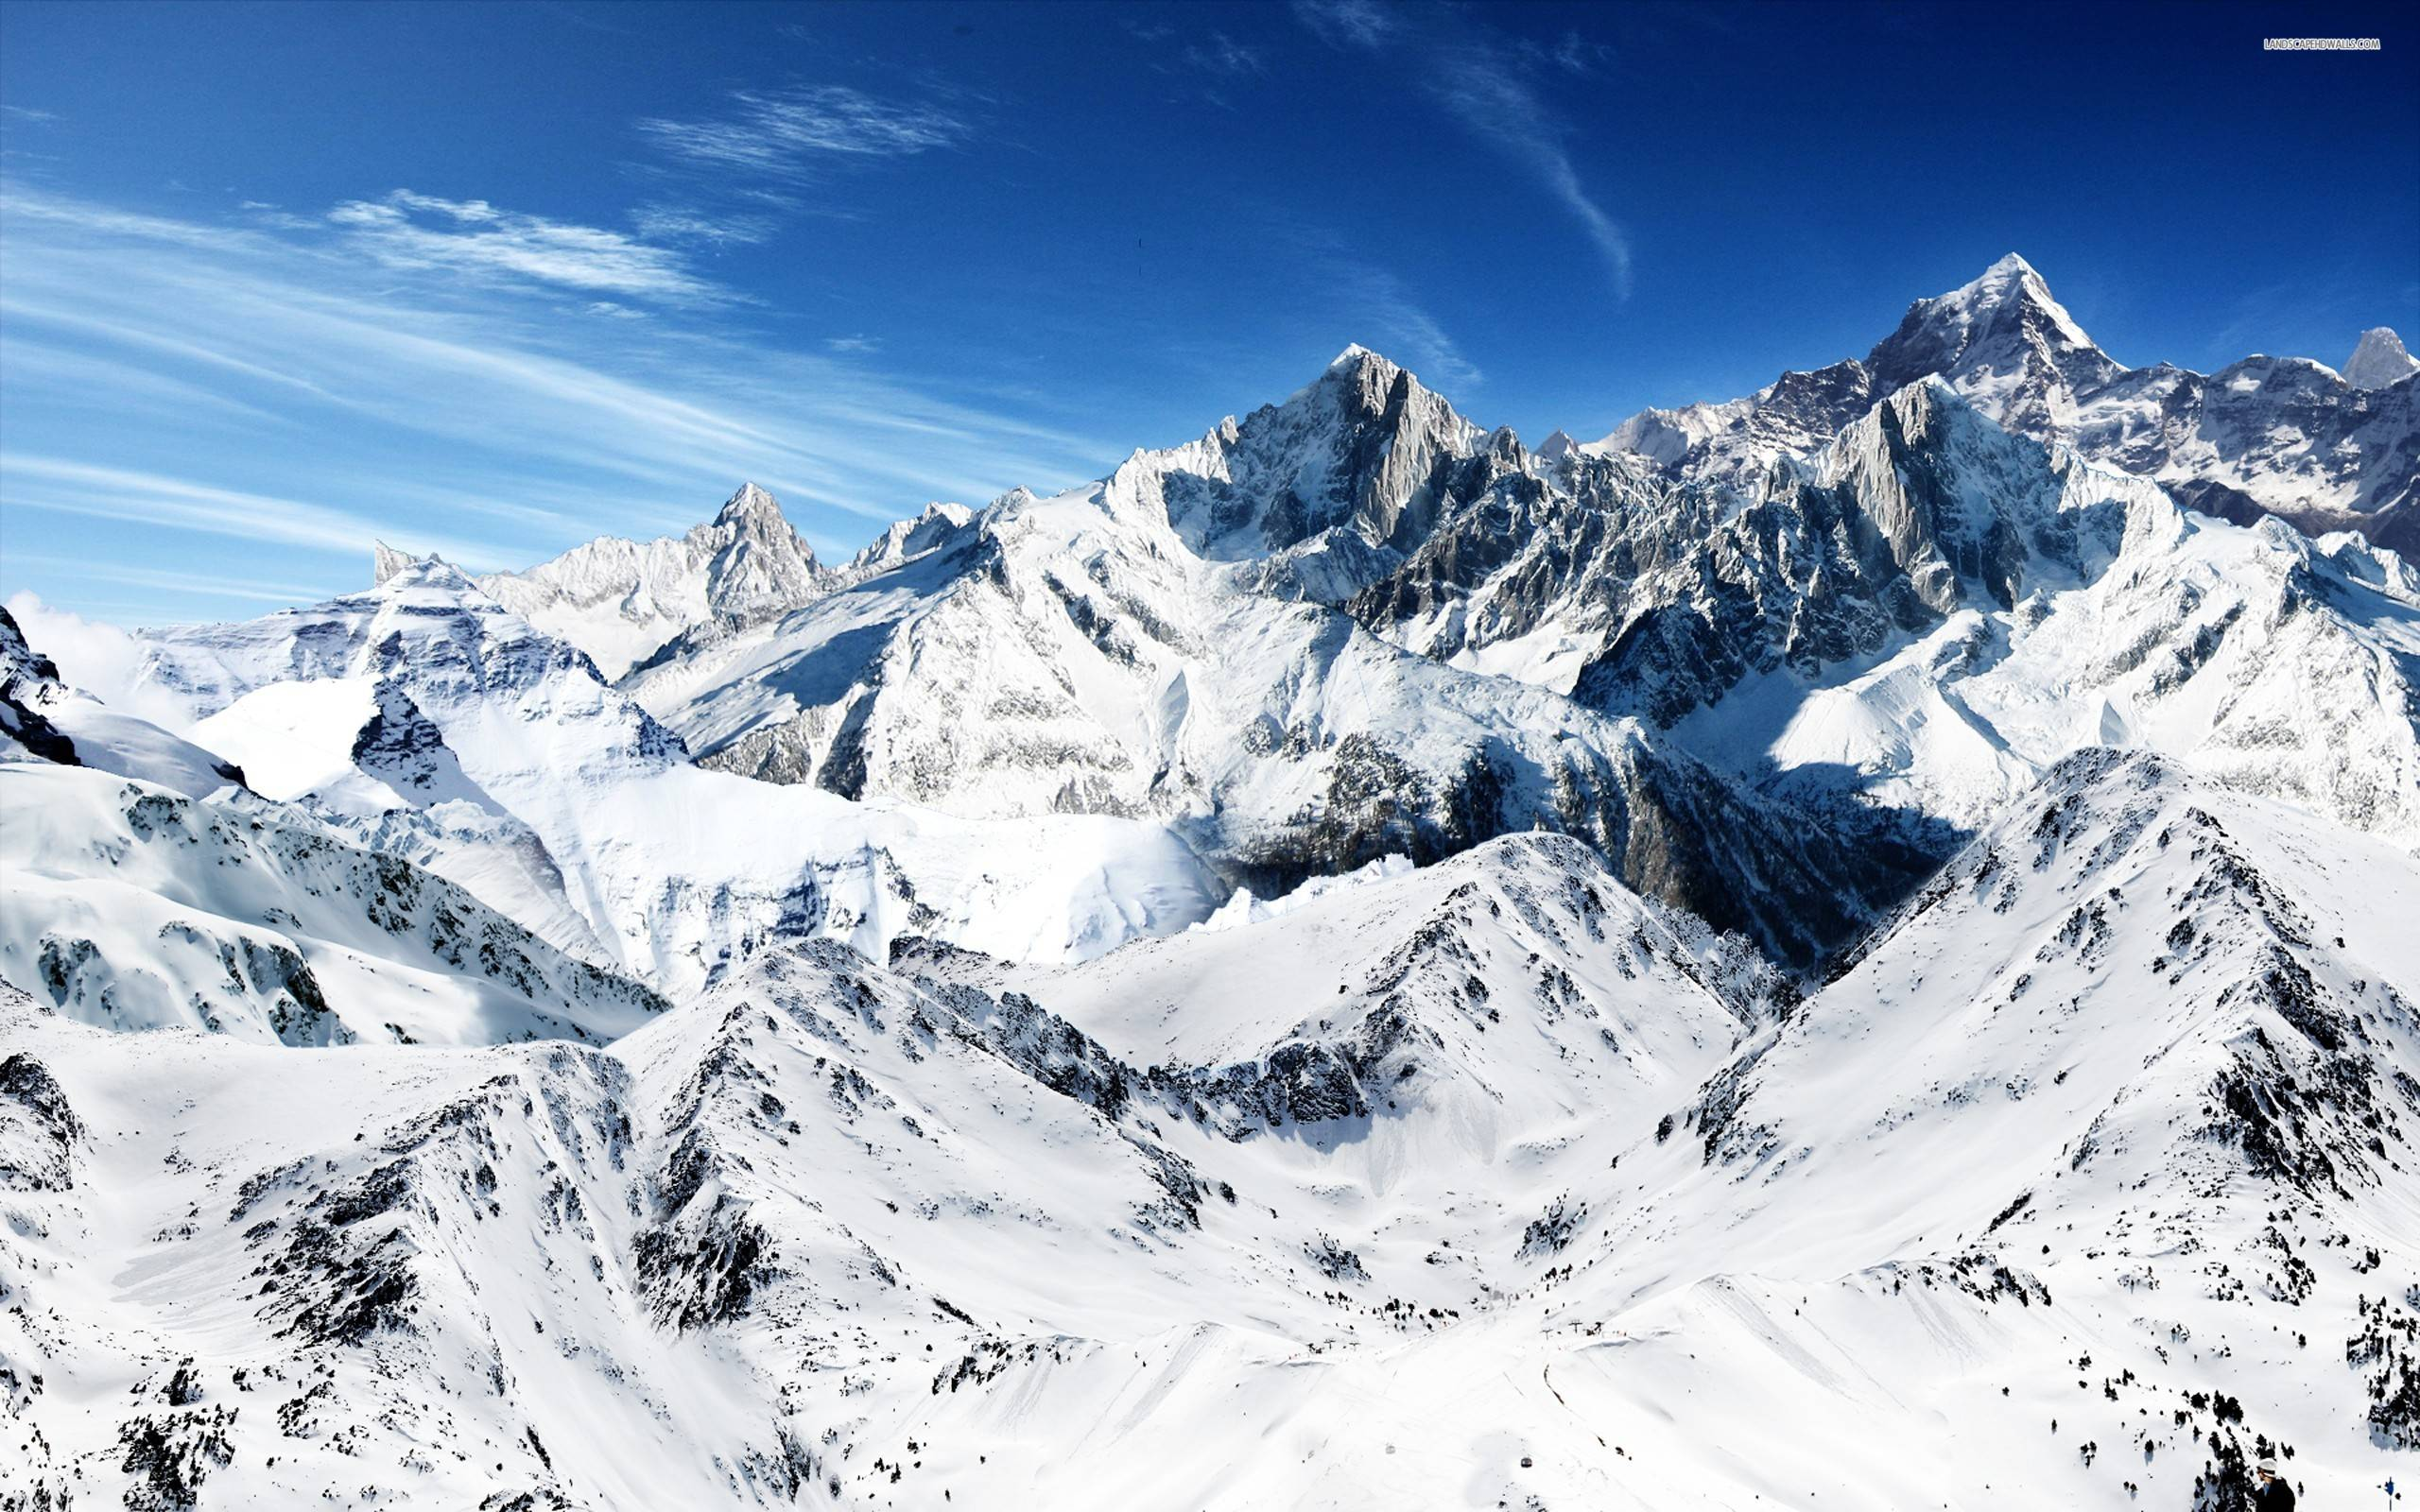 Snow mountains wallpapers wallpaper cave - Hd snow mountain wallpaper ...